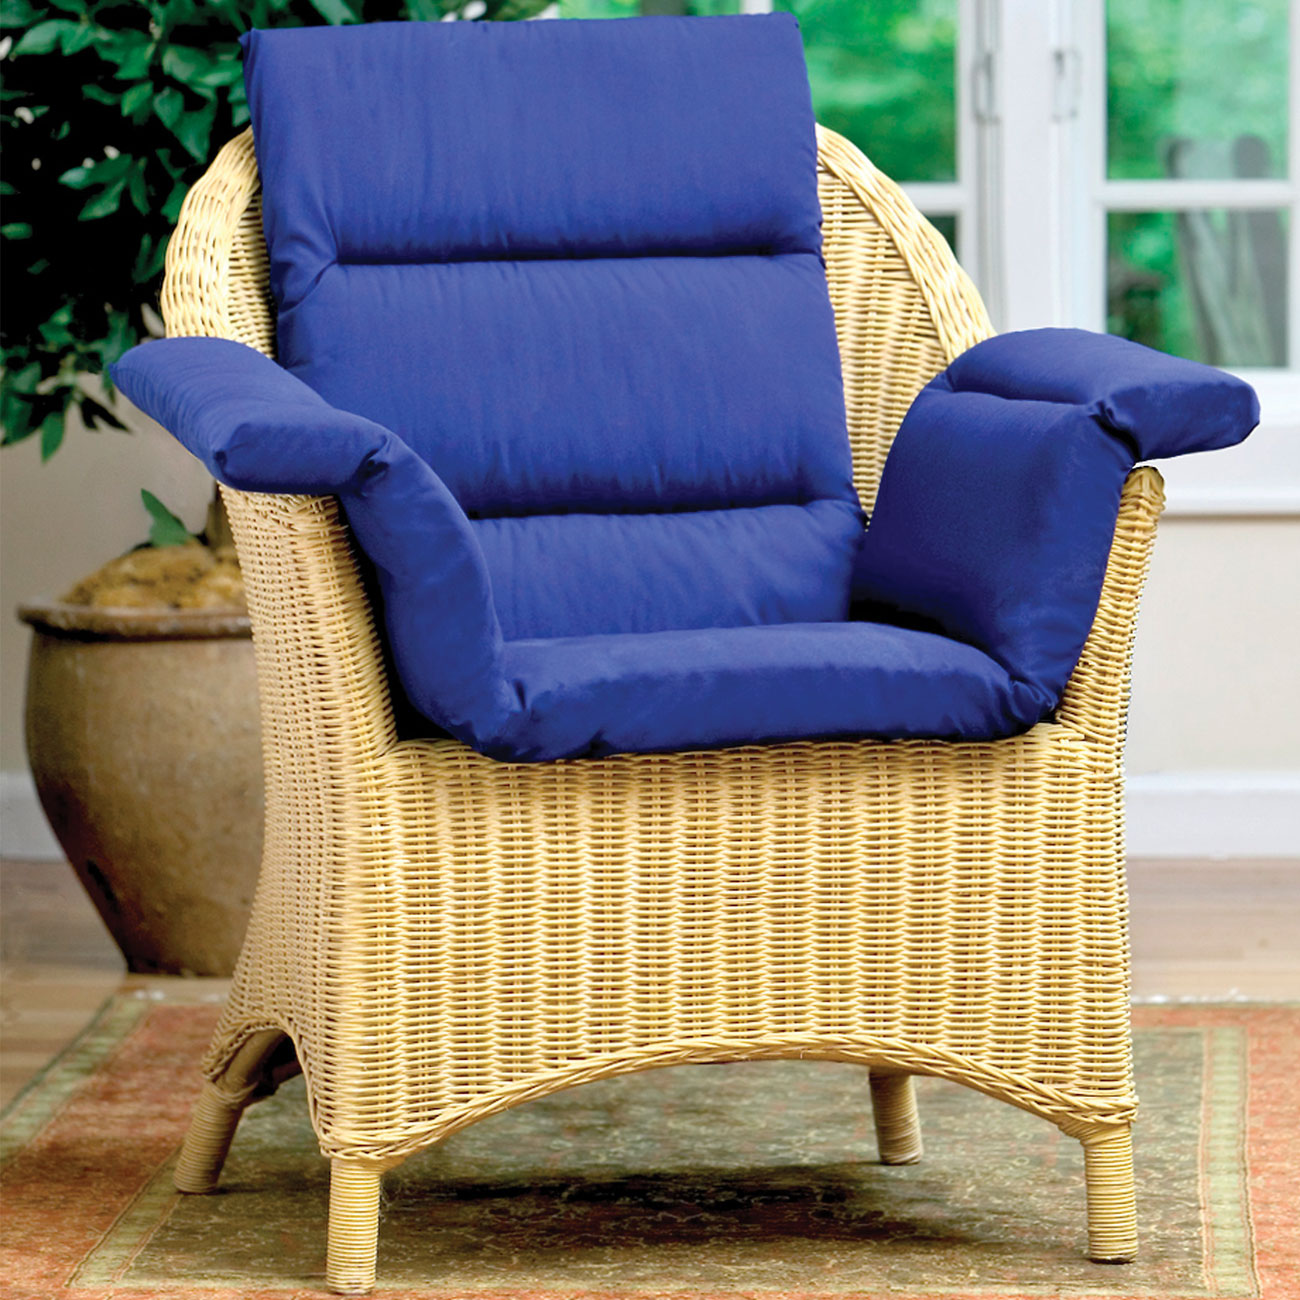 Total Chair Cushion - Blue Price: $36.95